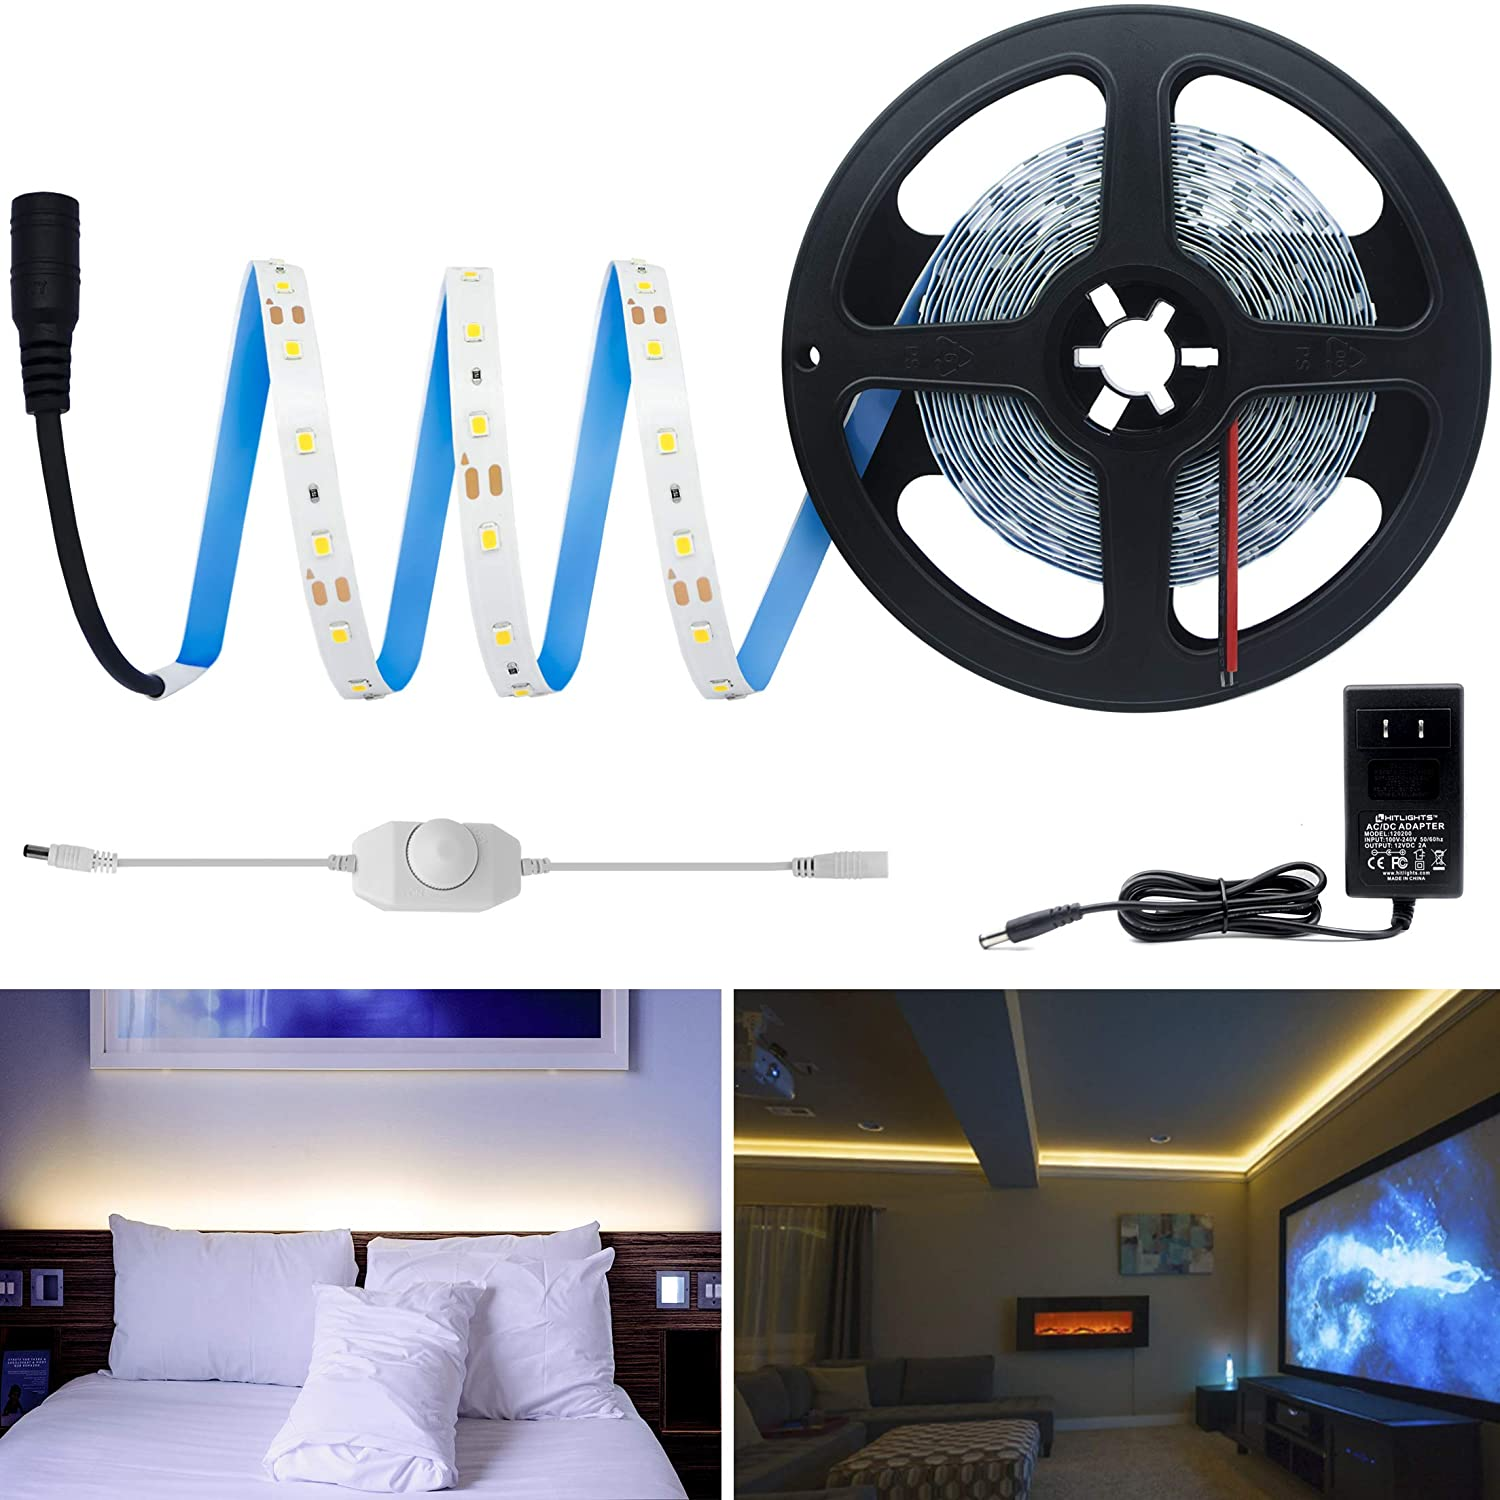 HitLights Warm White Dimmable LED Strip Lights Kit, 16.4 Feet - Includes Power Supply and Dimmer. 300 LEDs, 3000K, 72 Lumens per Foot. 12V DC Tape Light